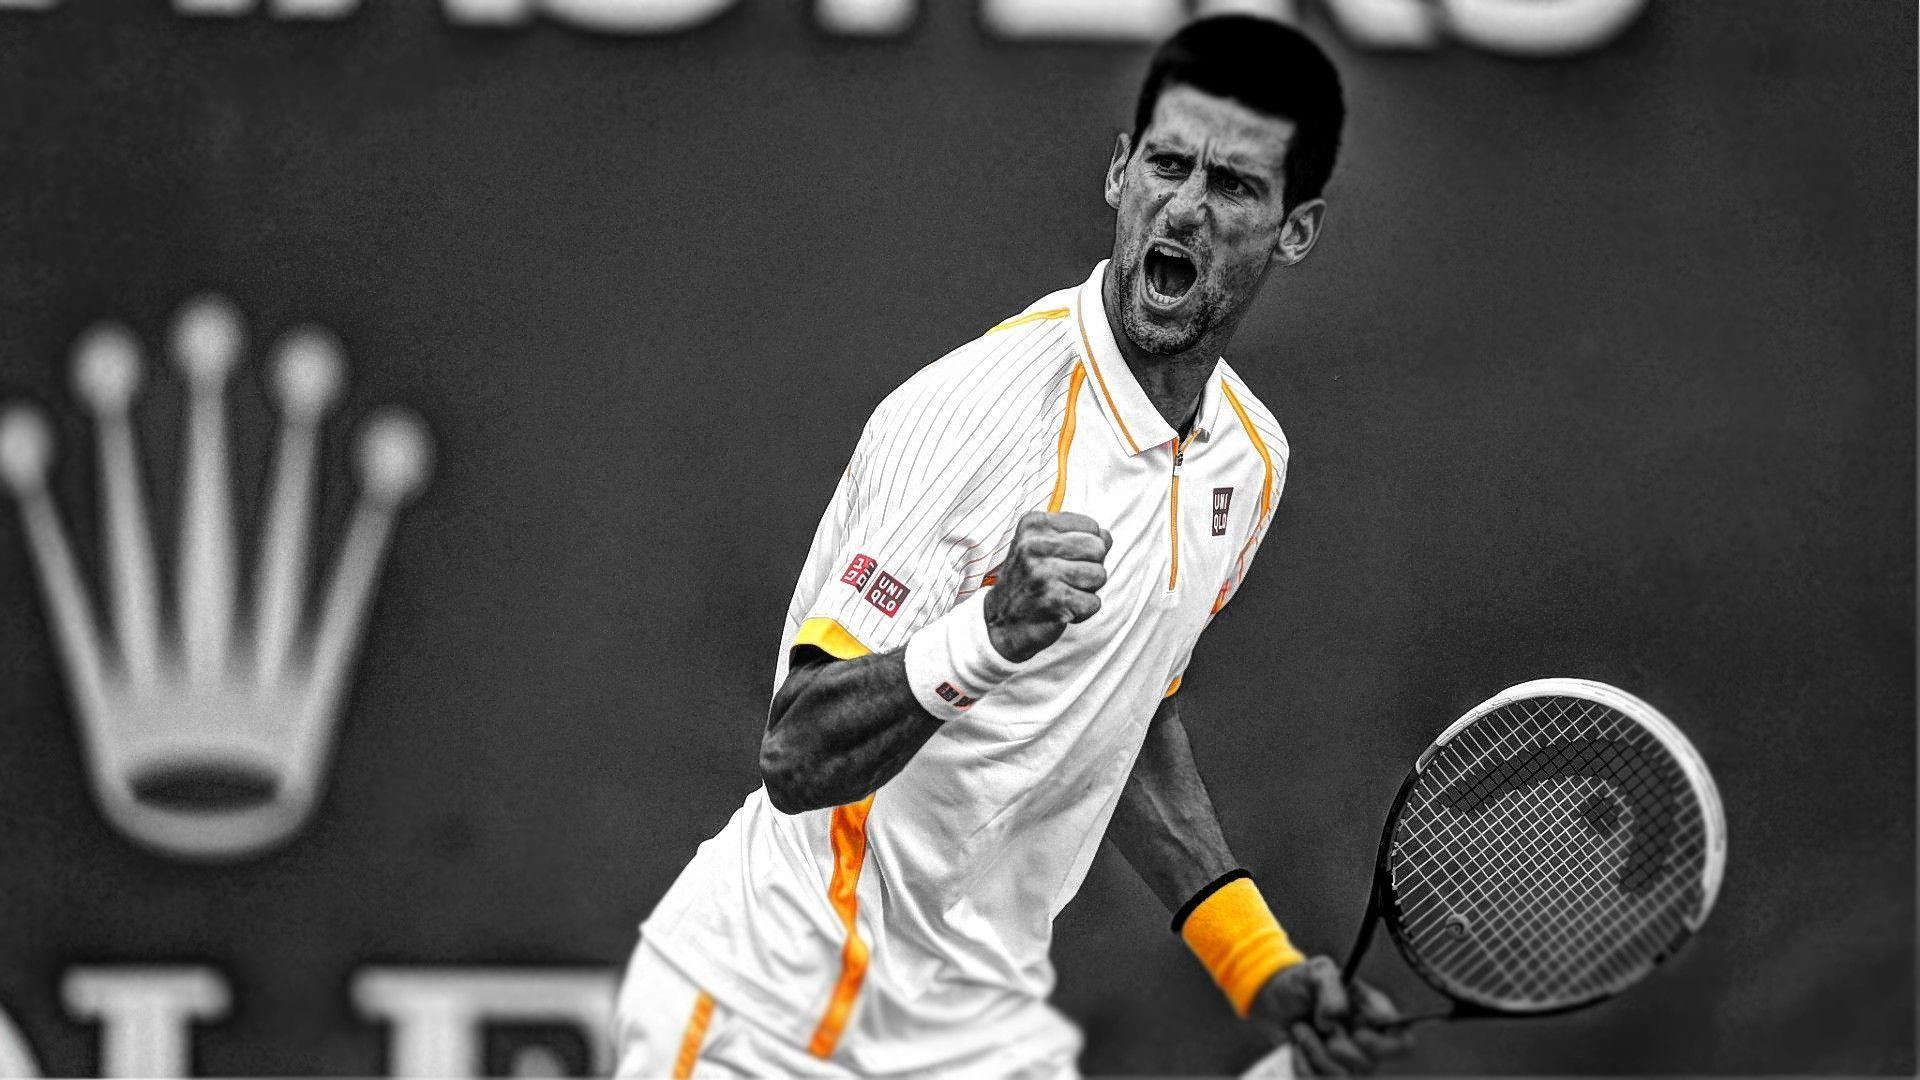 Novak Djokovic HD Wallpaper 1920x1080